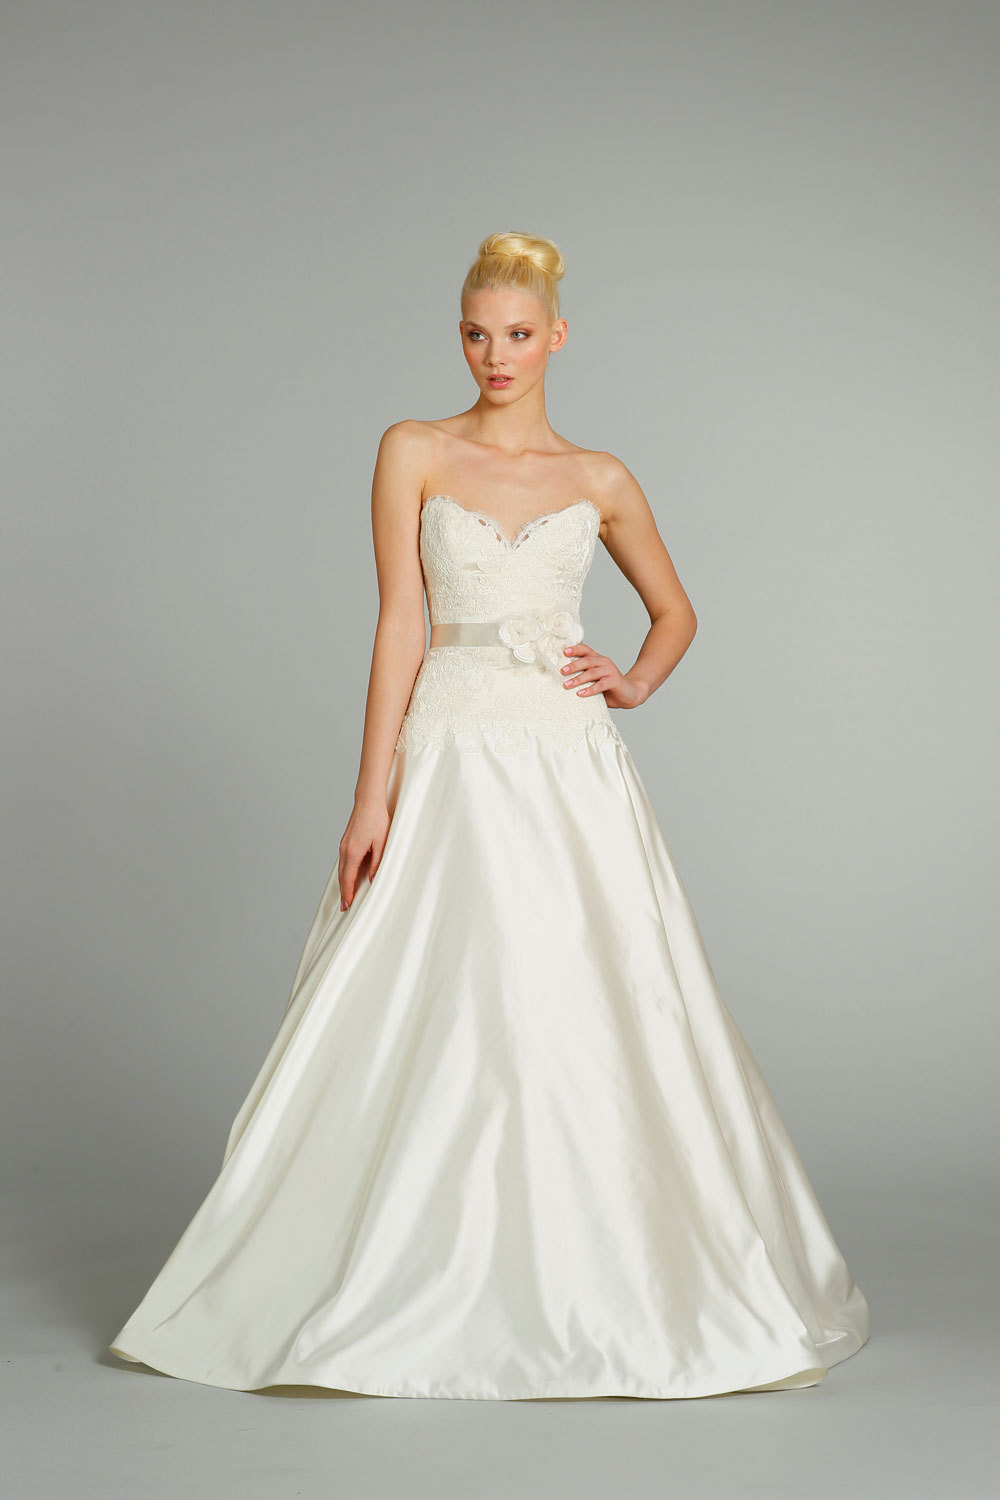 Fall-2012-wedding-dress-jim-hjelm-bridal-gowns-8260.full